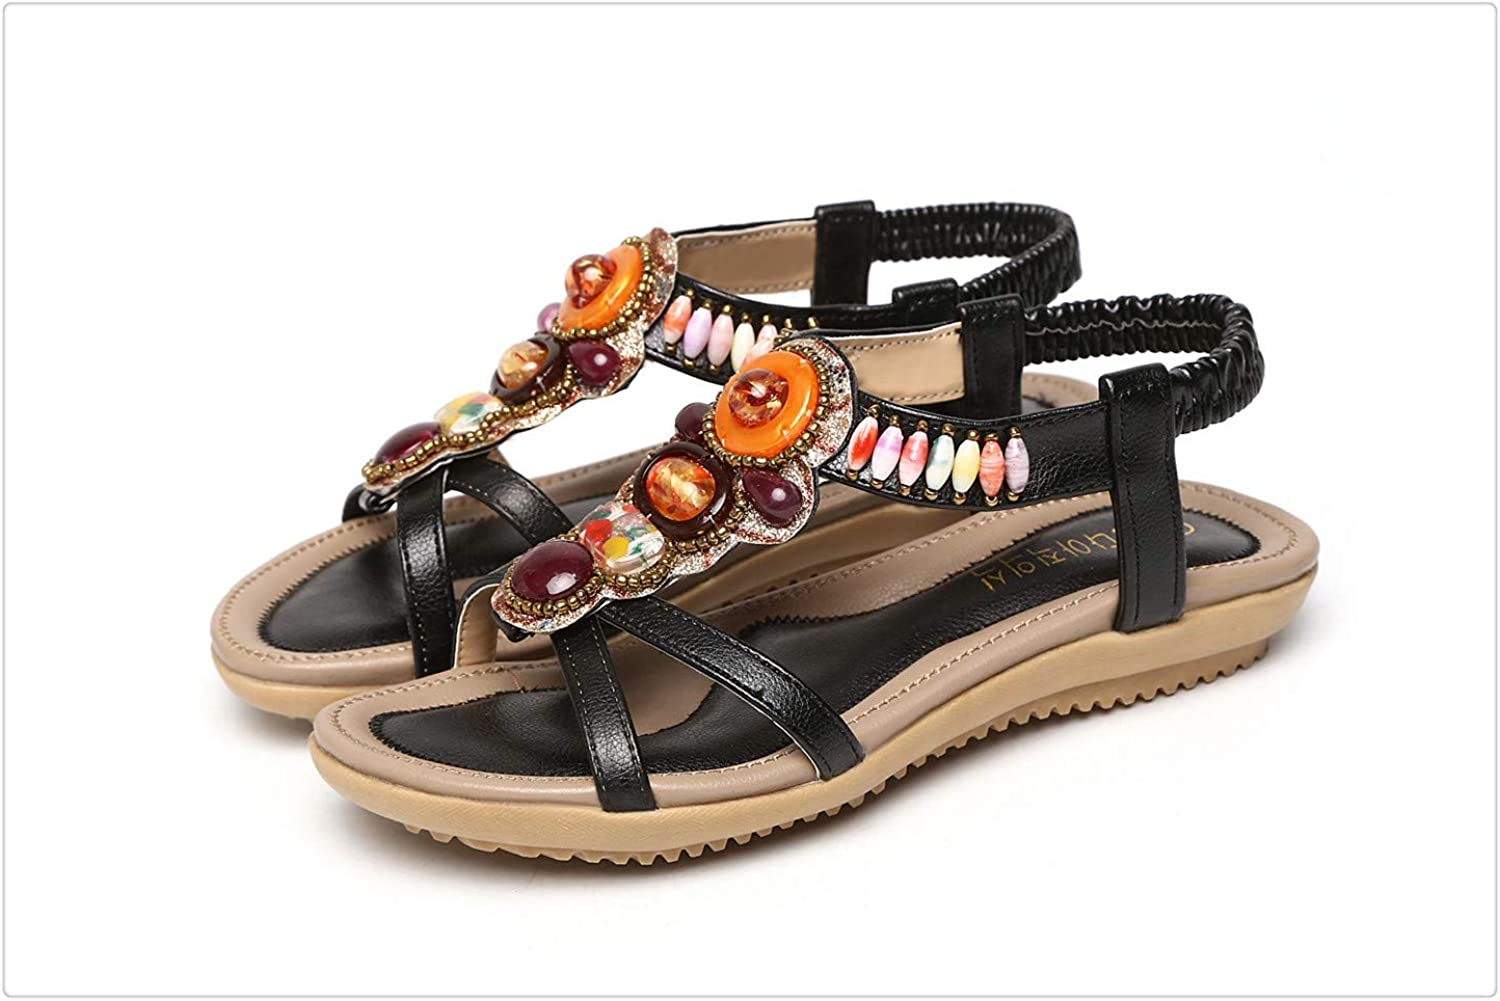 Yyixianma Summer Ladies Sandals Bohemia Flat Sandals Women Crystal Outdoor Beach shoes Female Casual shoes Black 38